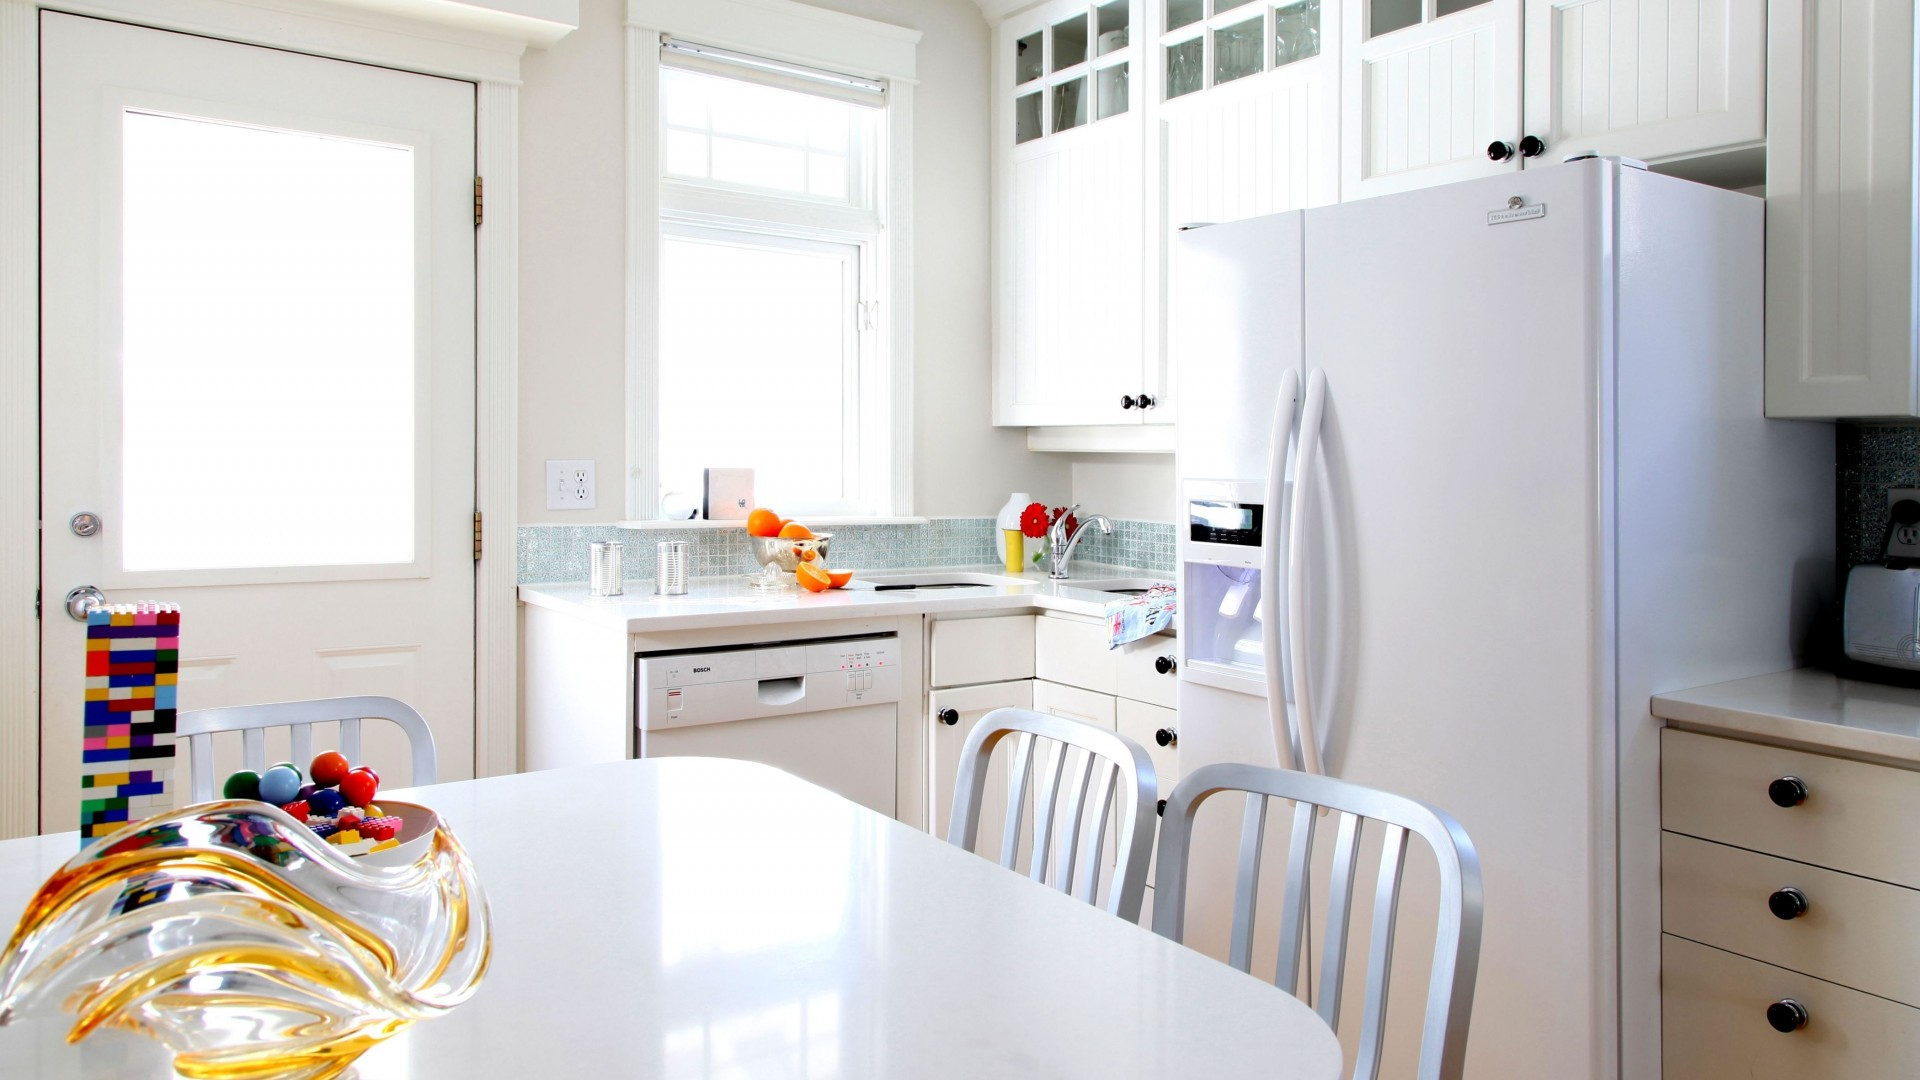 Deltalux Cleaning Ltd. - Cleaning Services Watford